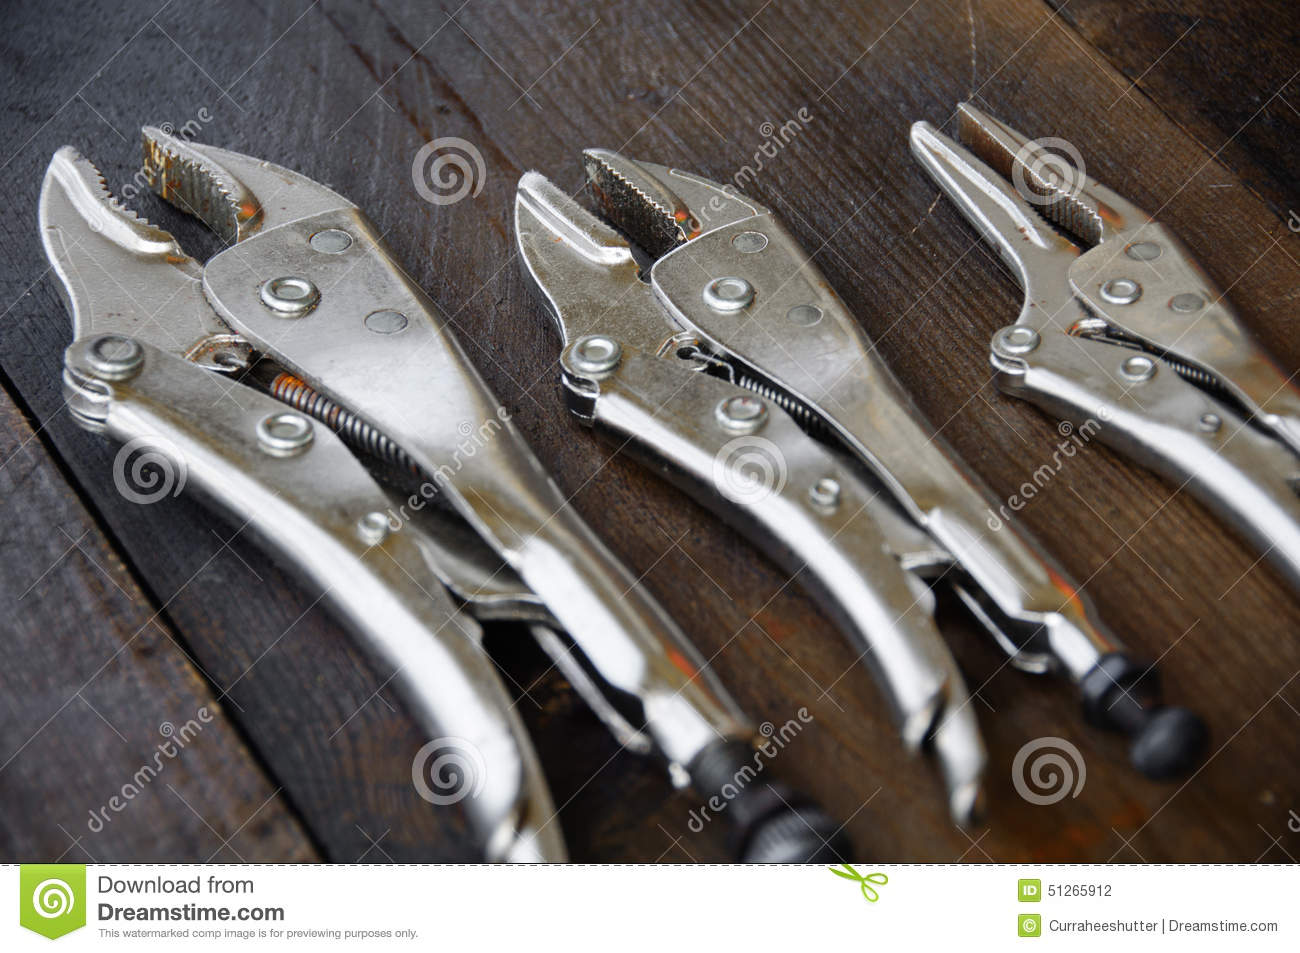 close up locking pliers on wooden background hand tools in work shop royalty free stock photo. Black Bedroom Furniture Sets. Home Design Ideas